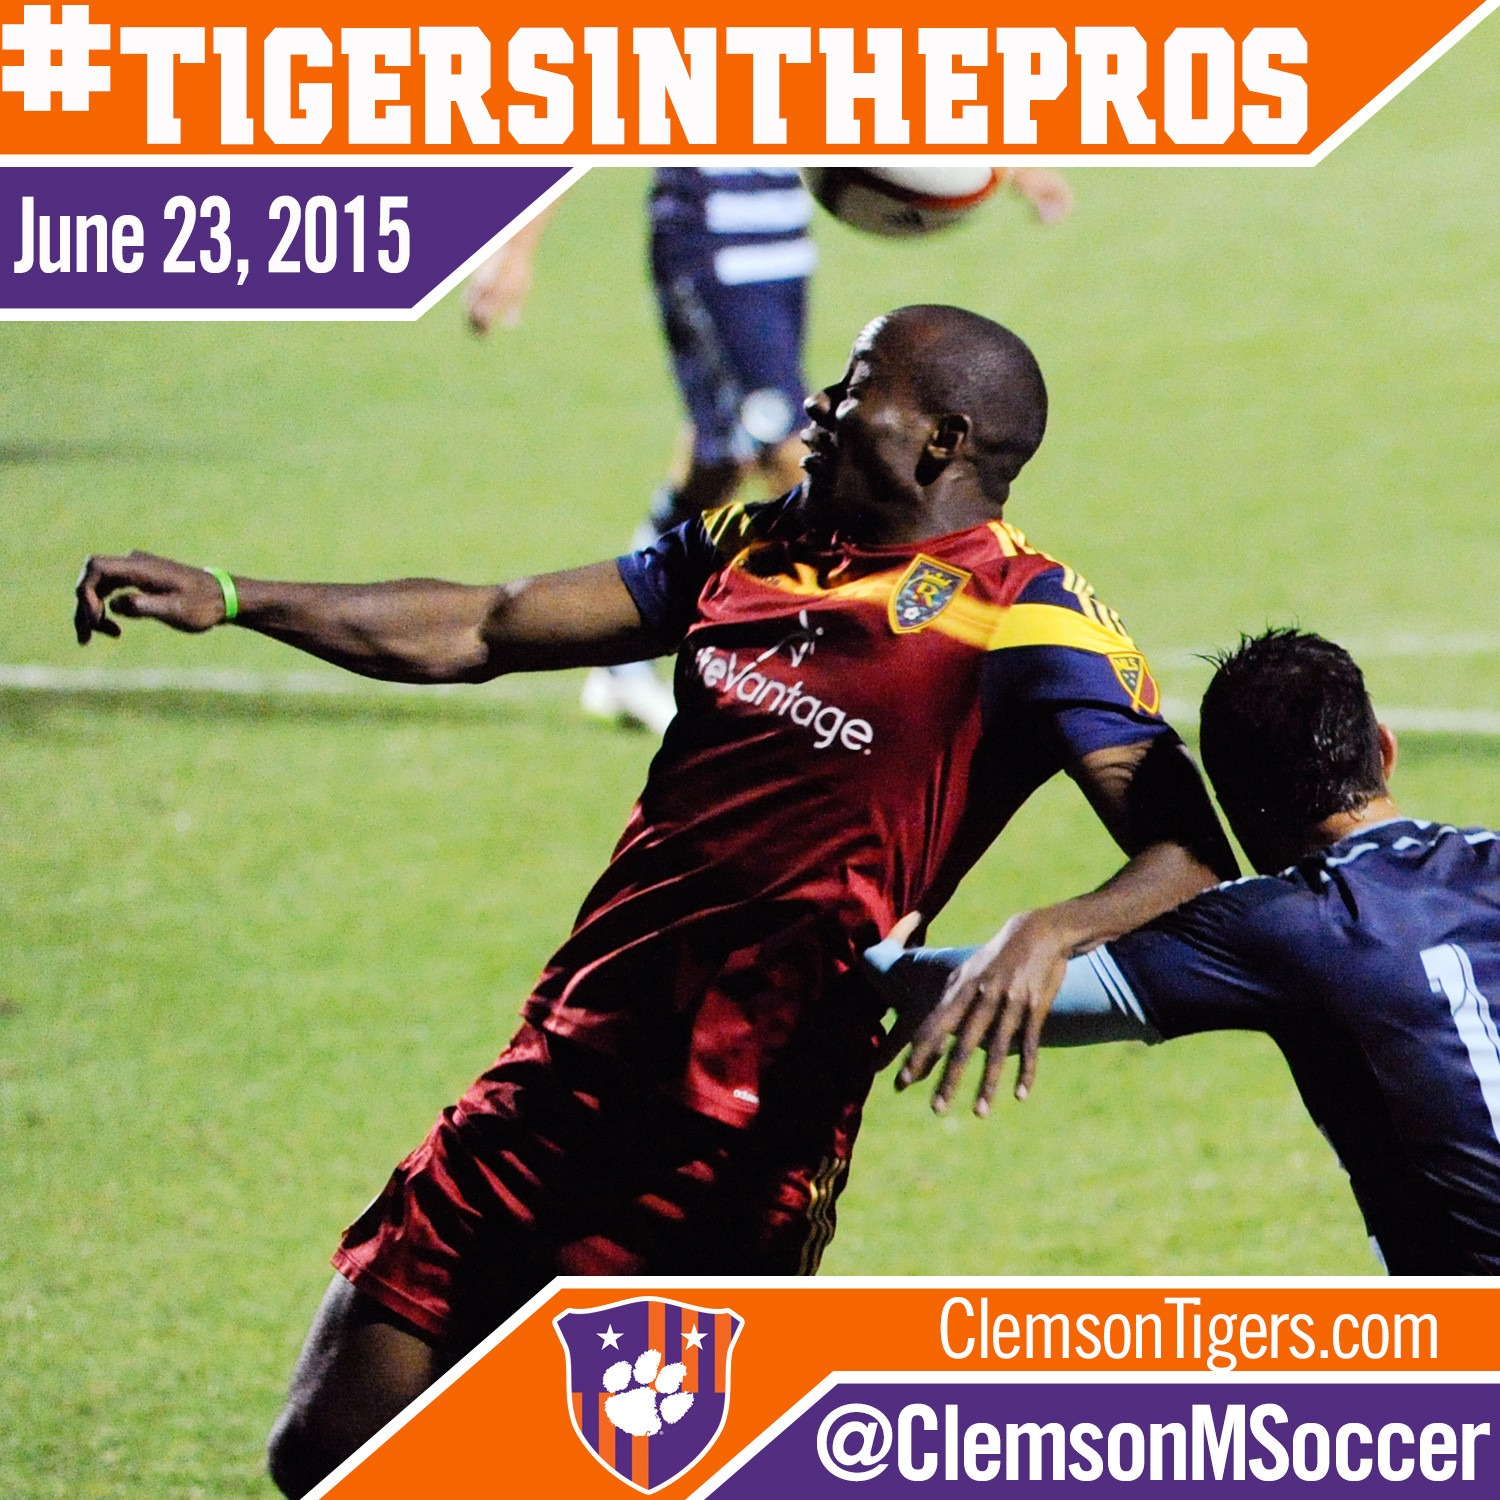 Two Former Tigers Make MLS Debuts